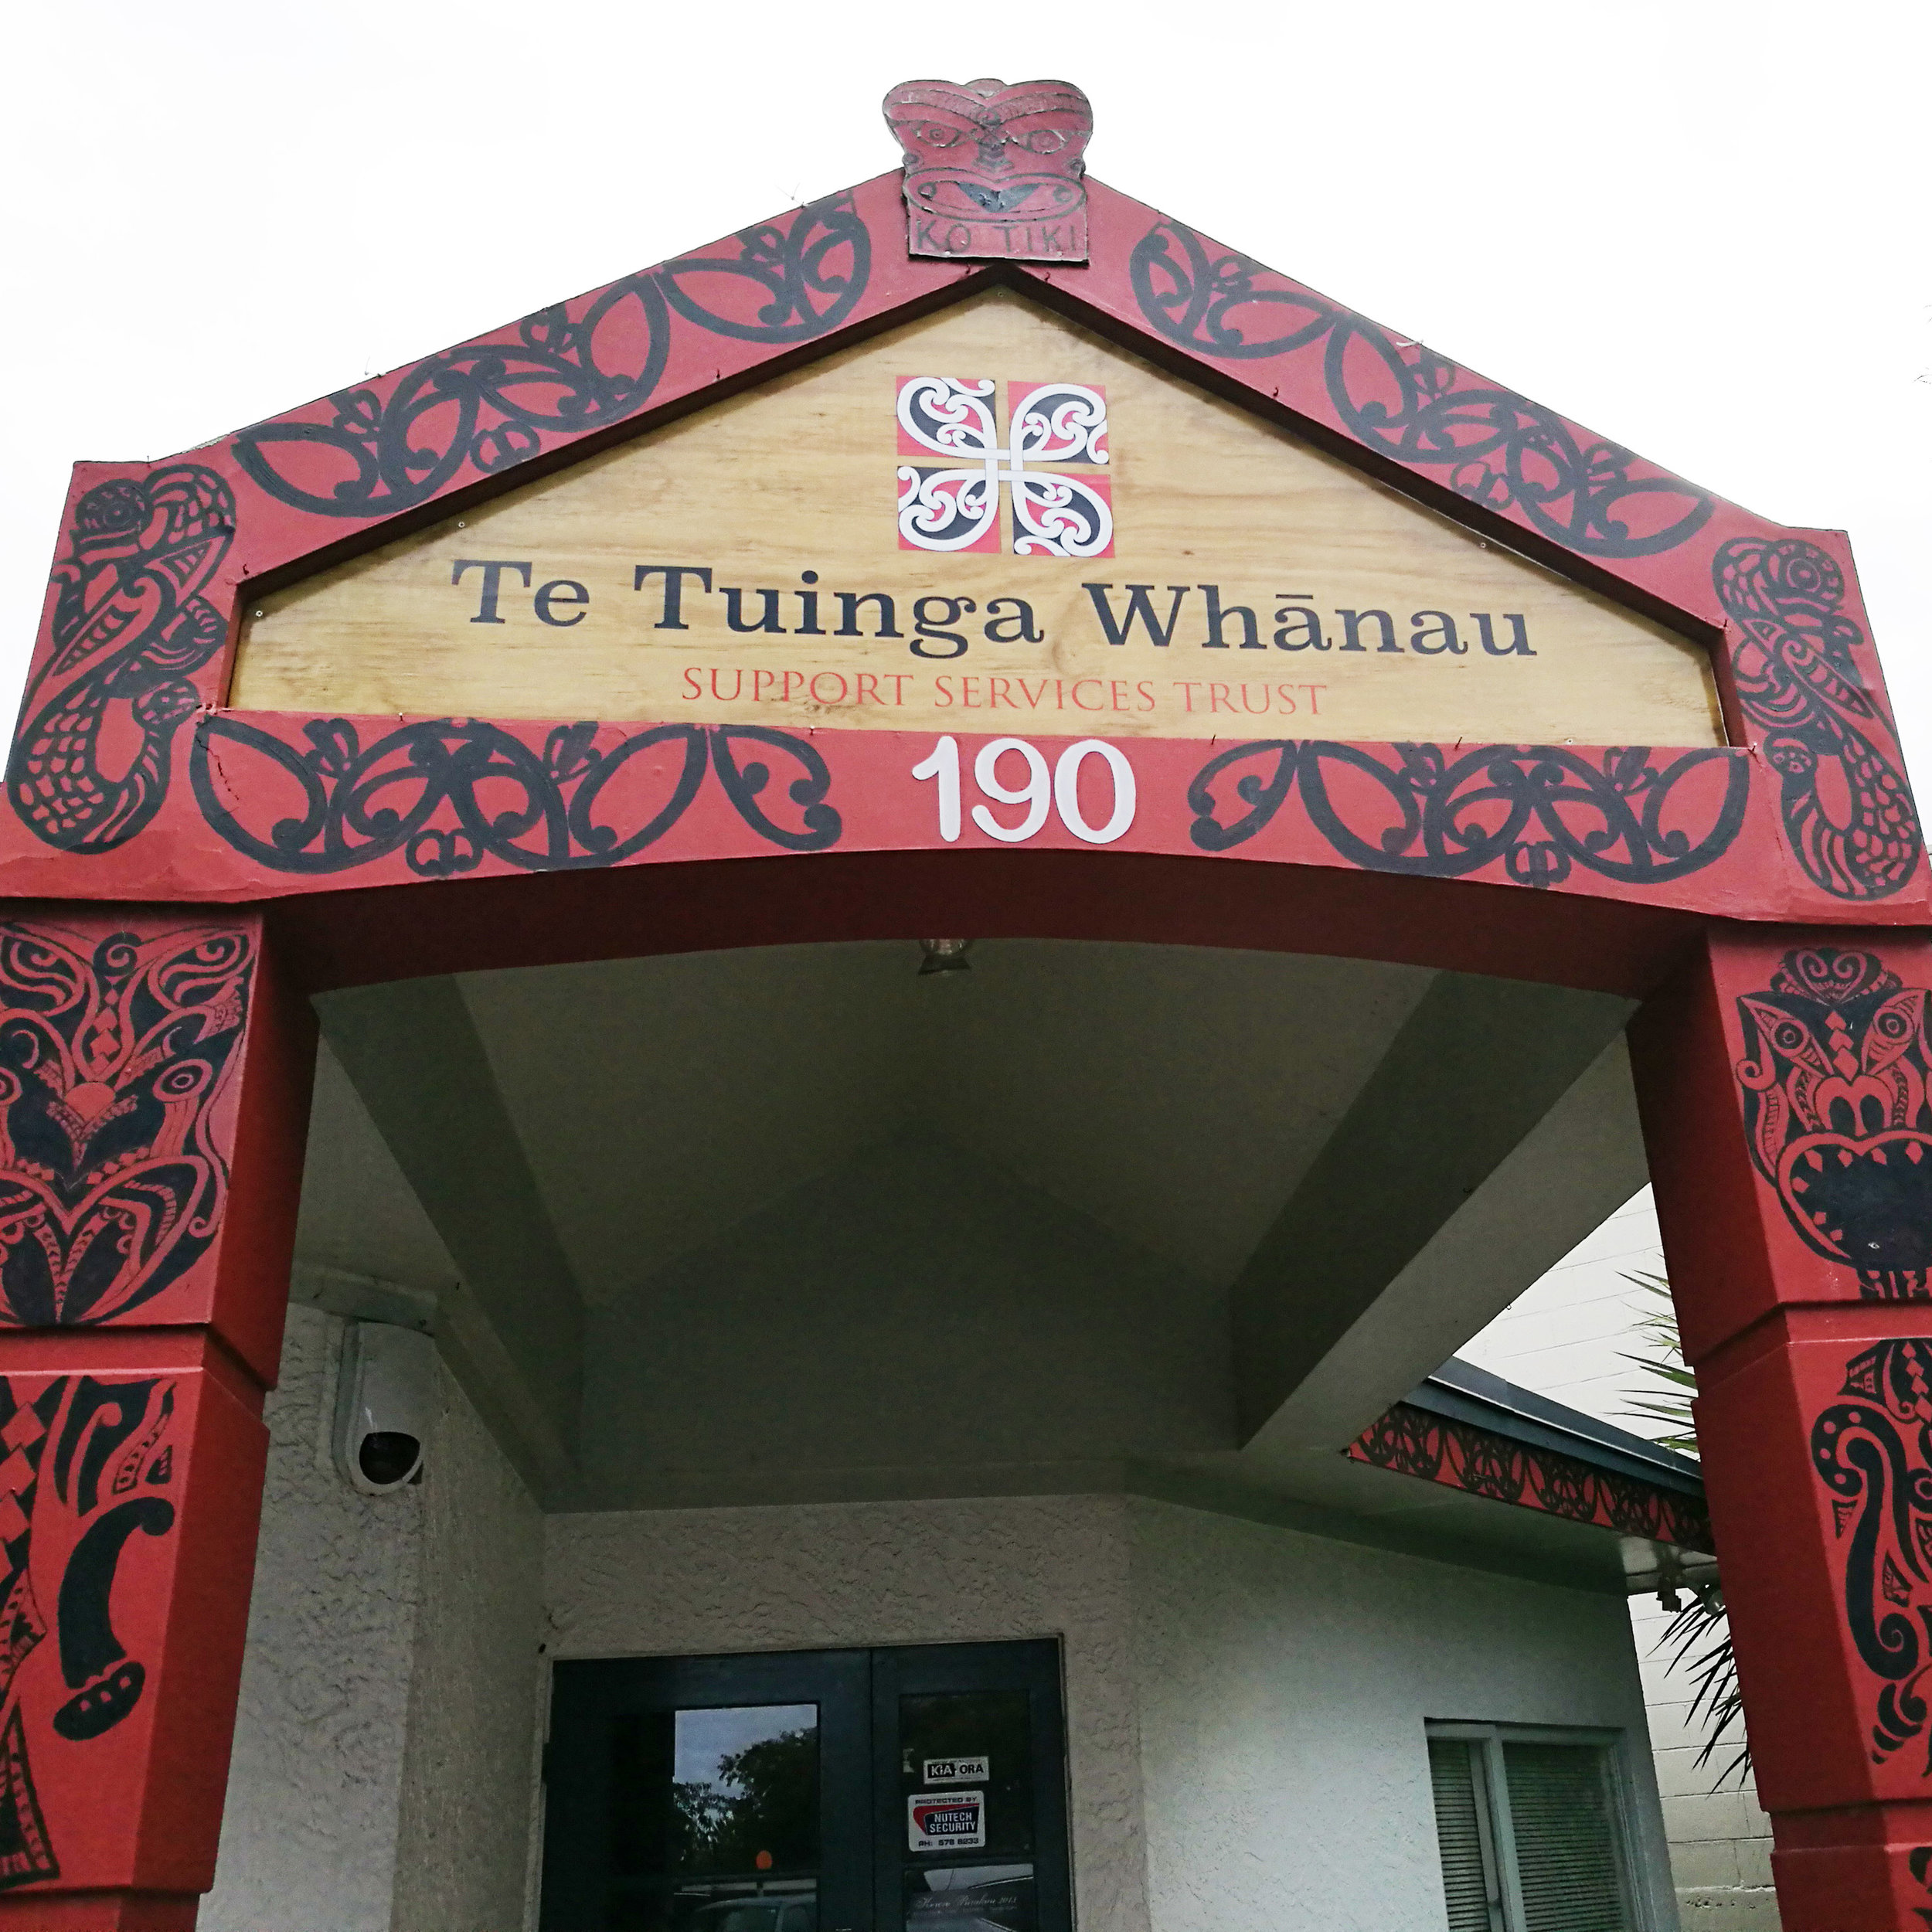 Provided support services to over 4,000 individuals and whanau. - That's an average of 80 interventions a week!